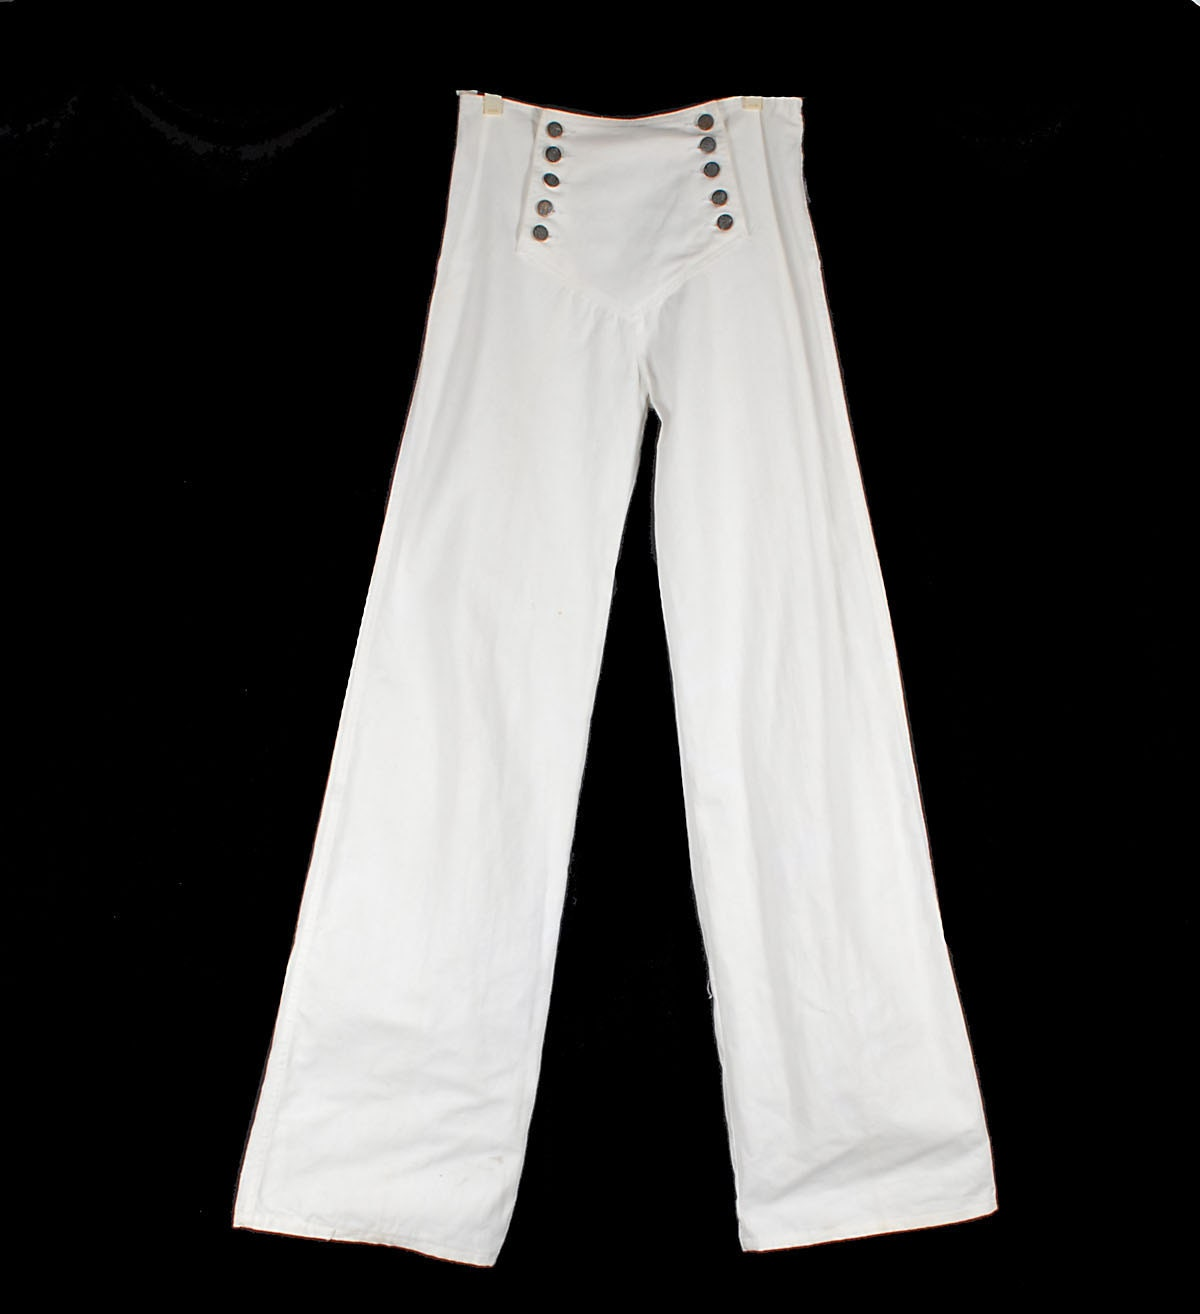 Vintage 70s White High Waisted Nautical Sailor Pants With Wide